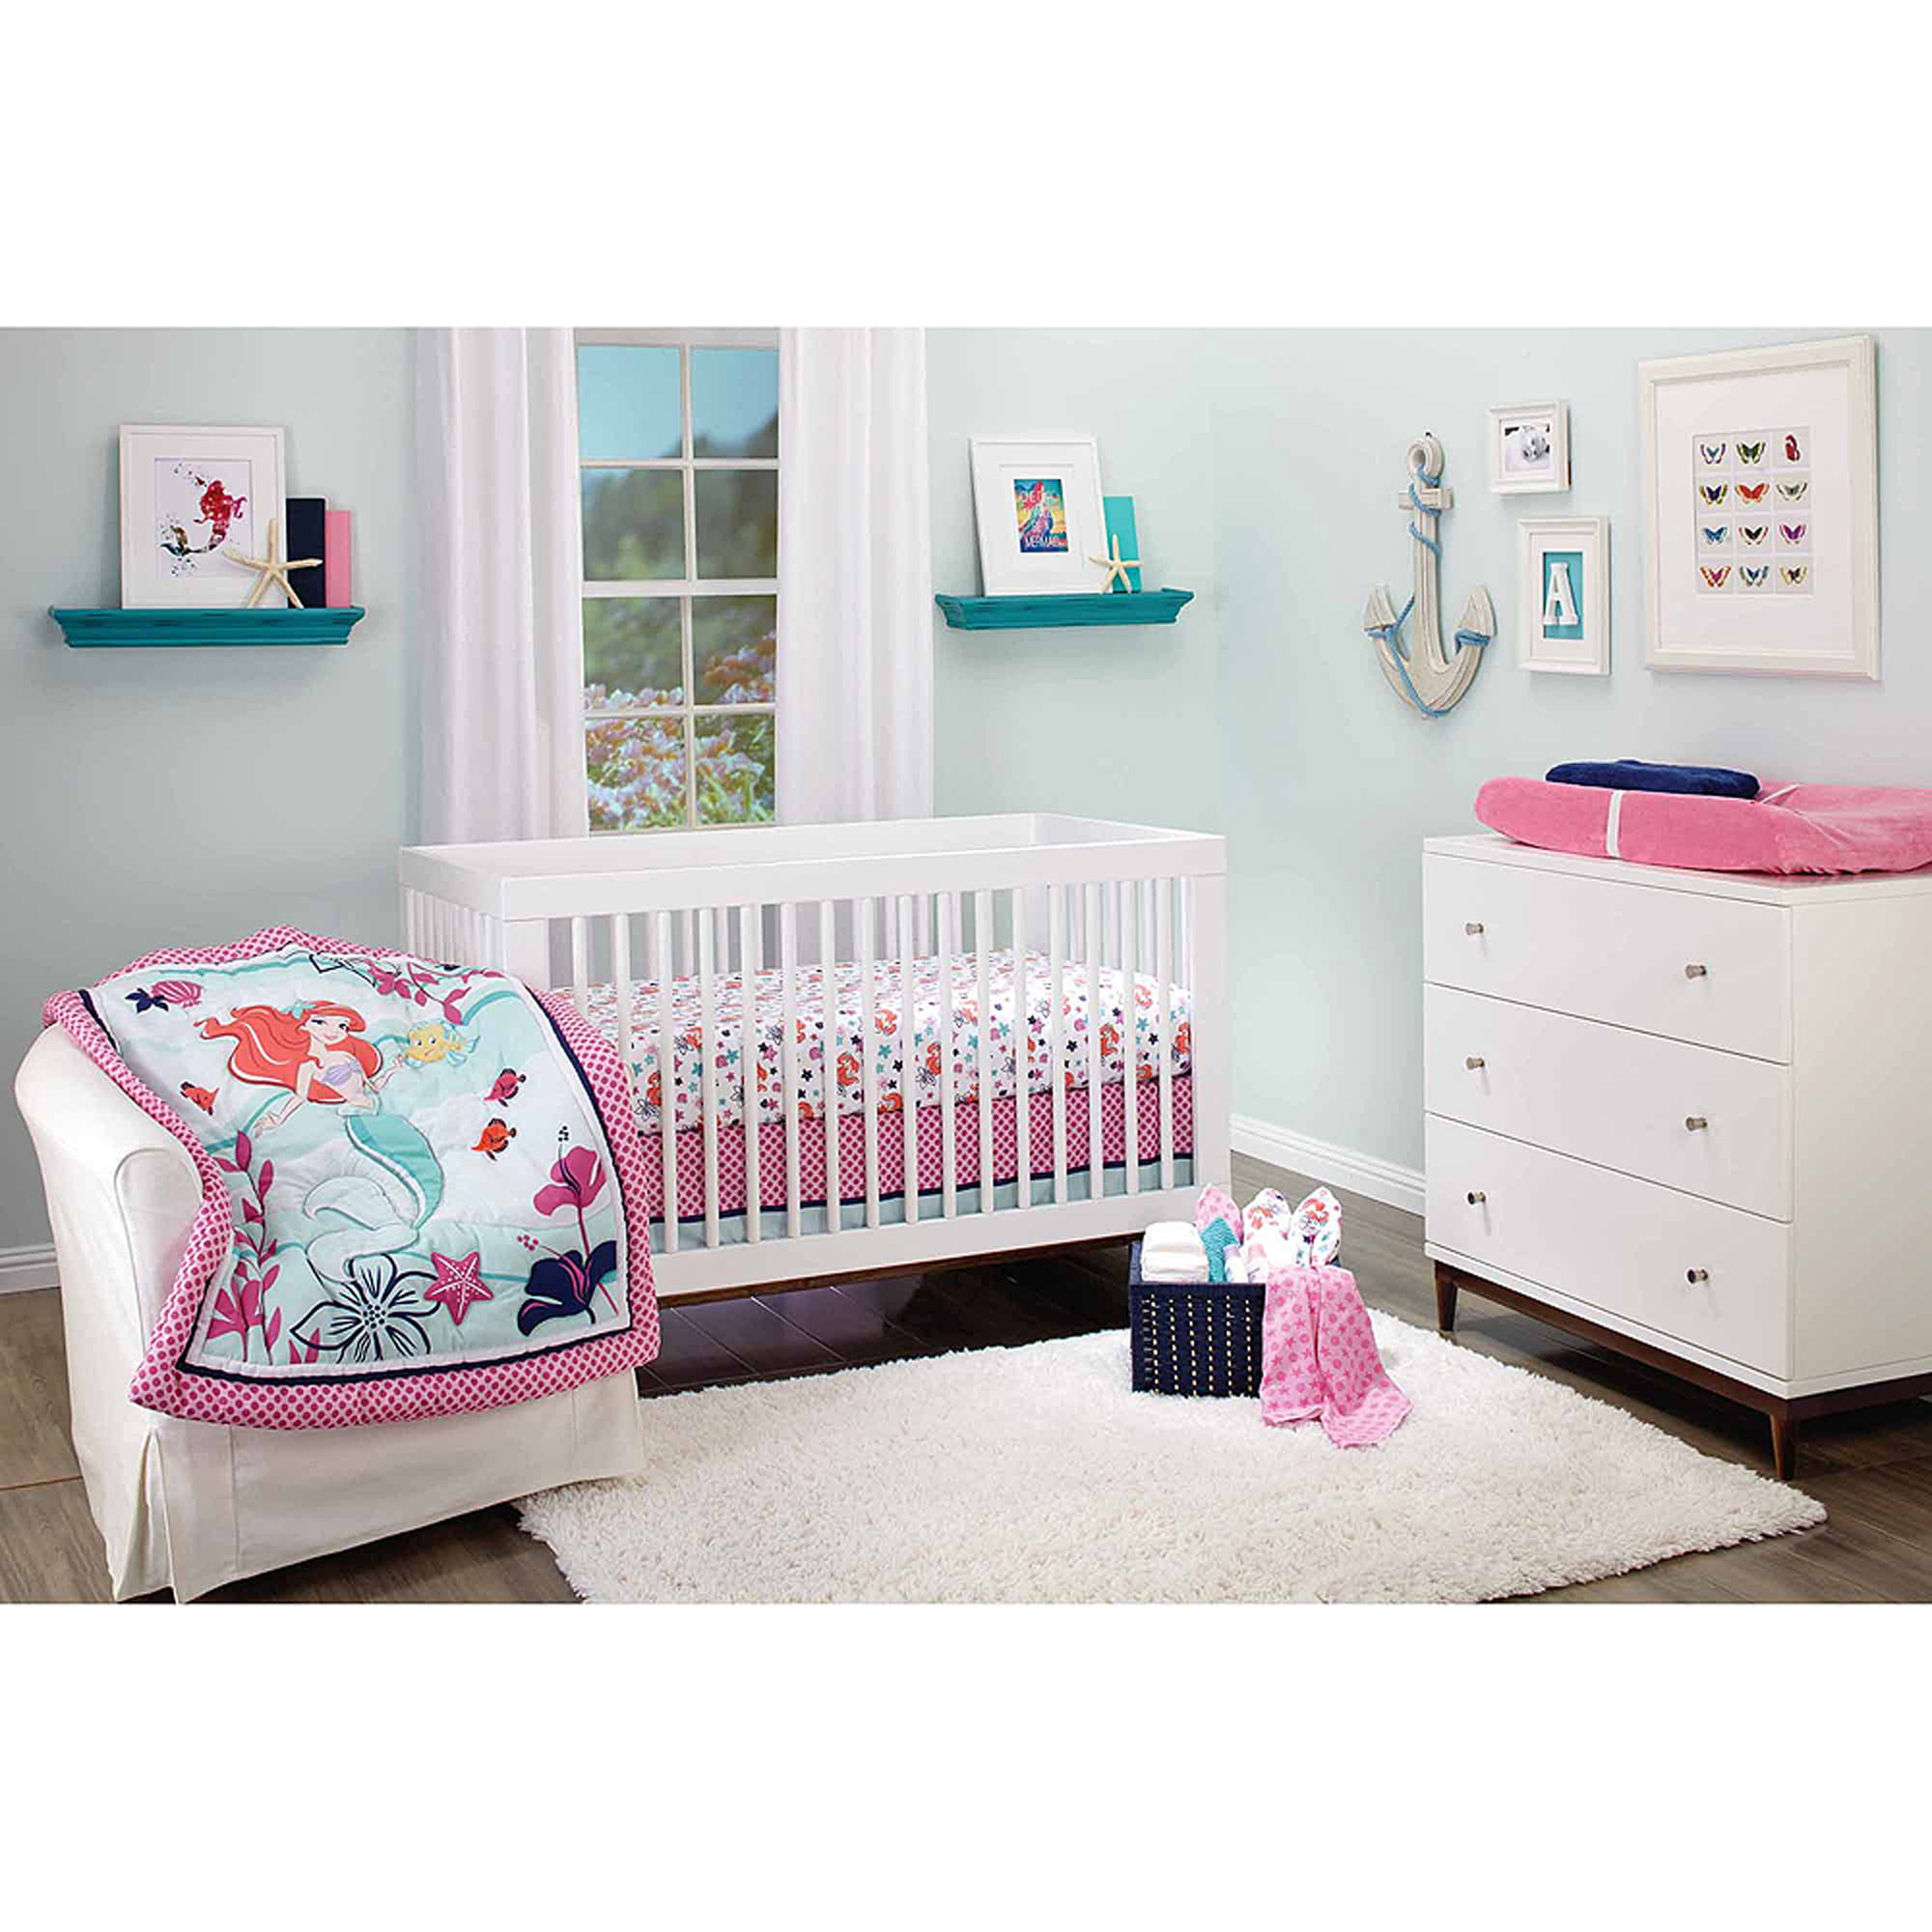 disney princess happily ever after  piece crib bedding set pink  - disney princess happily ever after  piece crib bedding set pink walmartcom